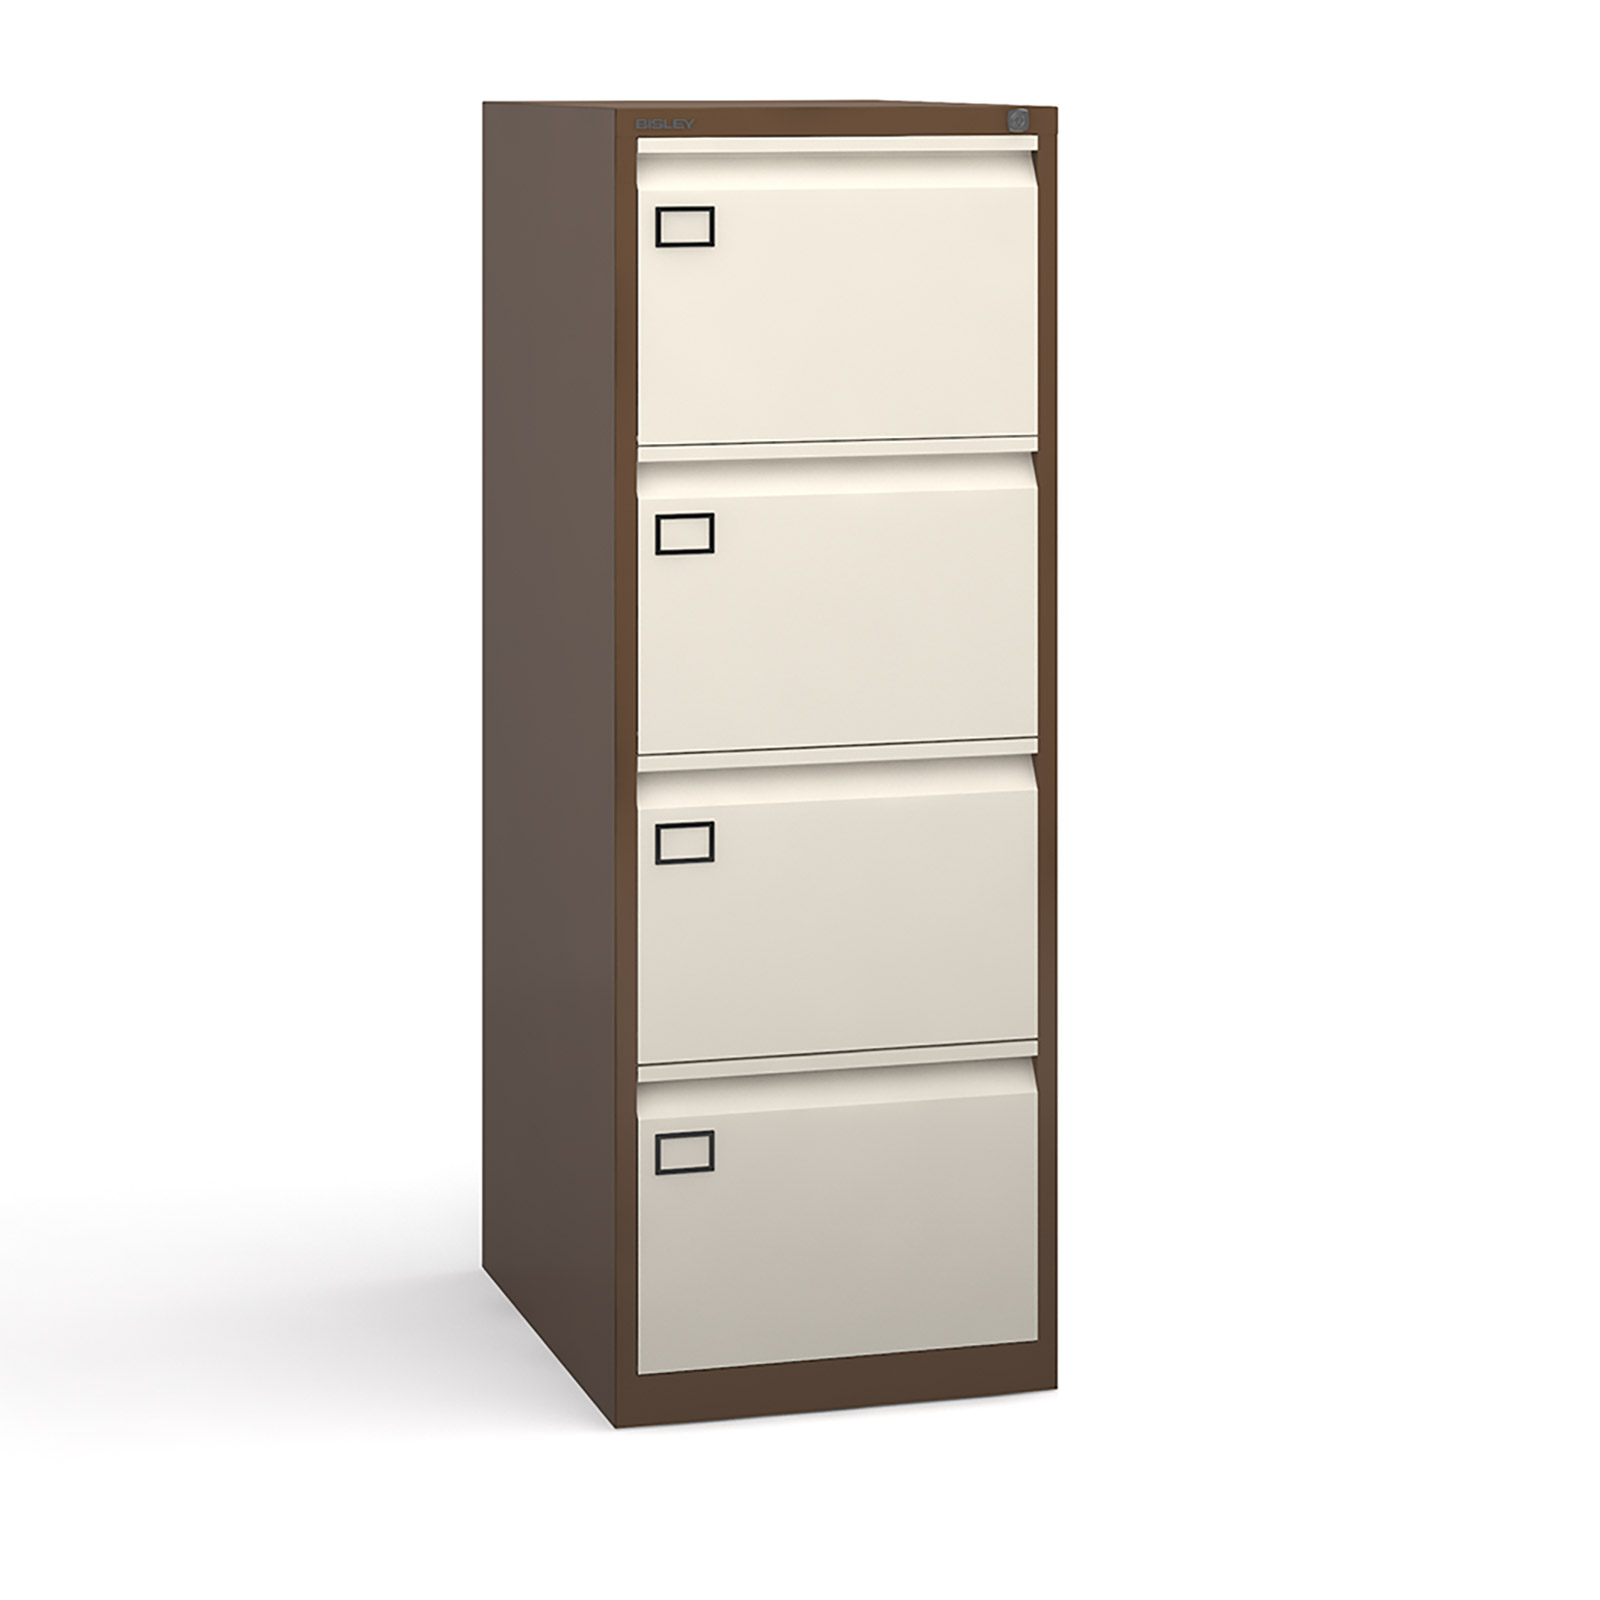 4 drawer executive filing cabinet Coffee Cream